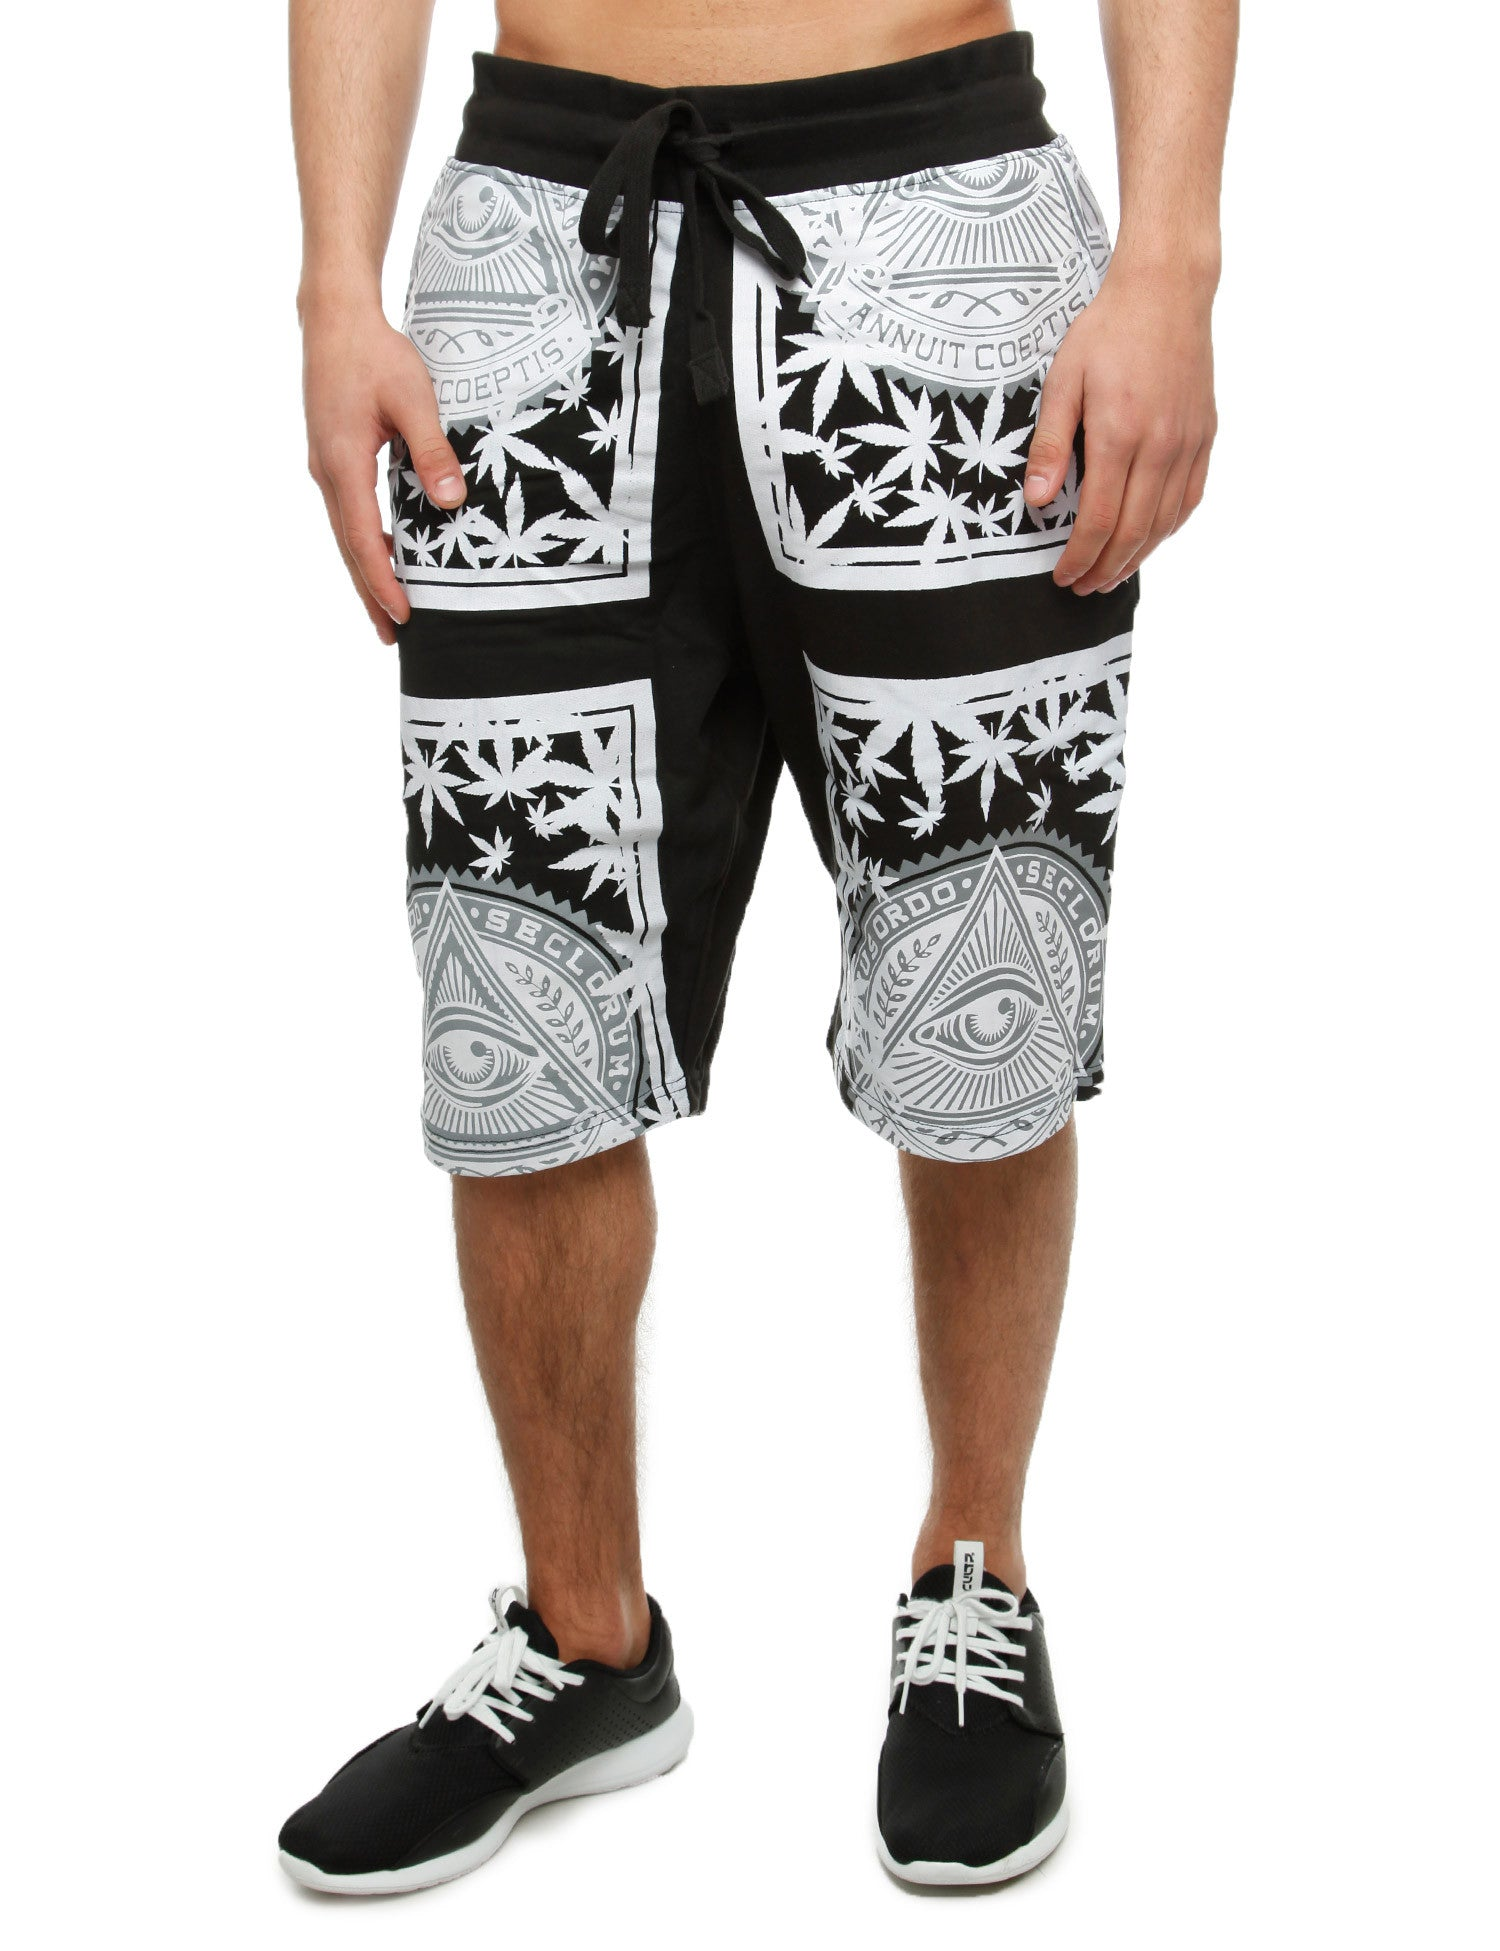 Imperious Shorts SP527 Black